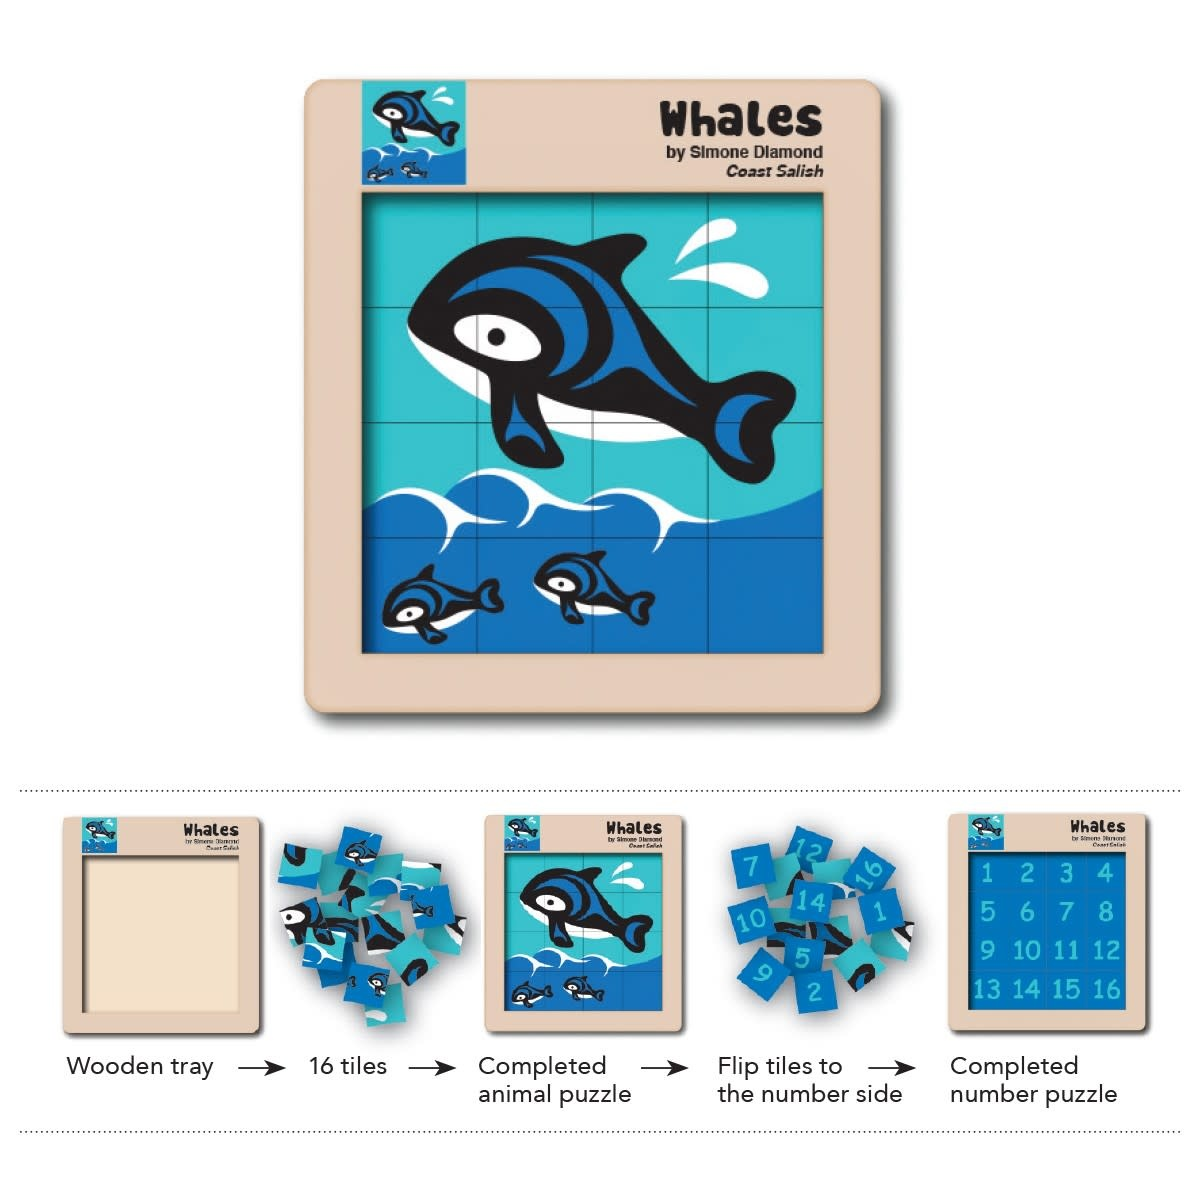 Double Sided Wooden Puzzle - Whales-2